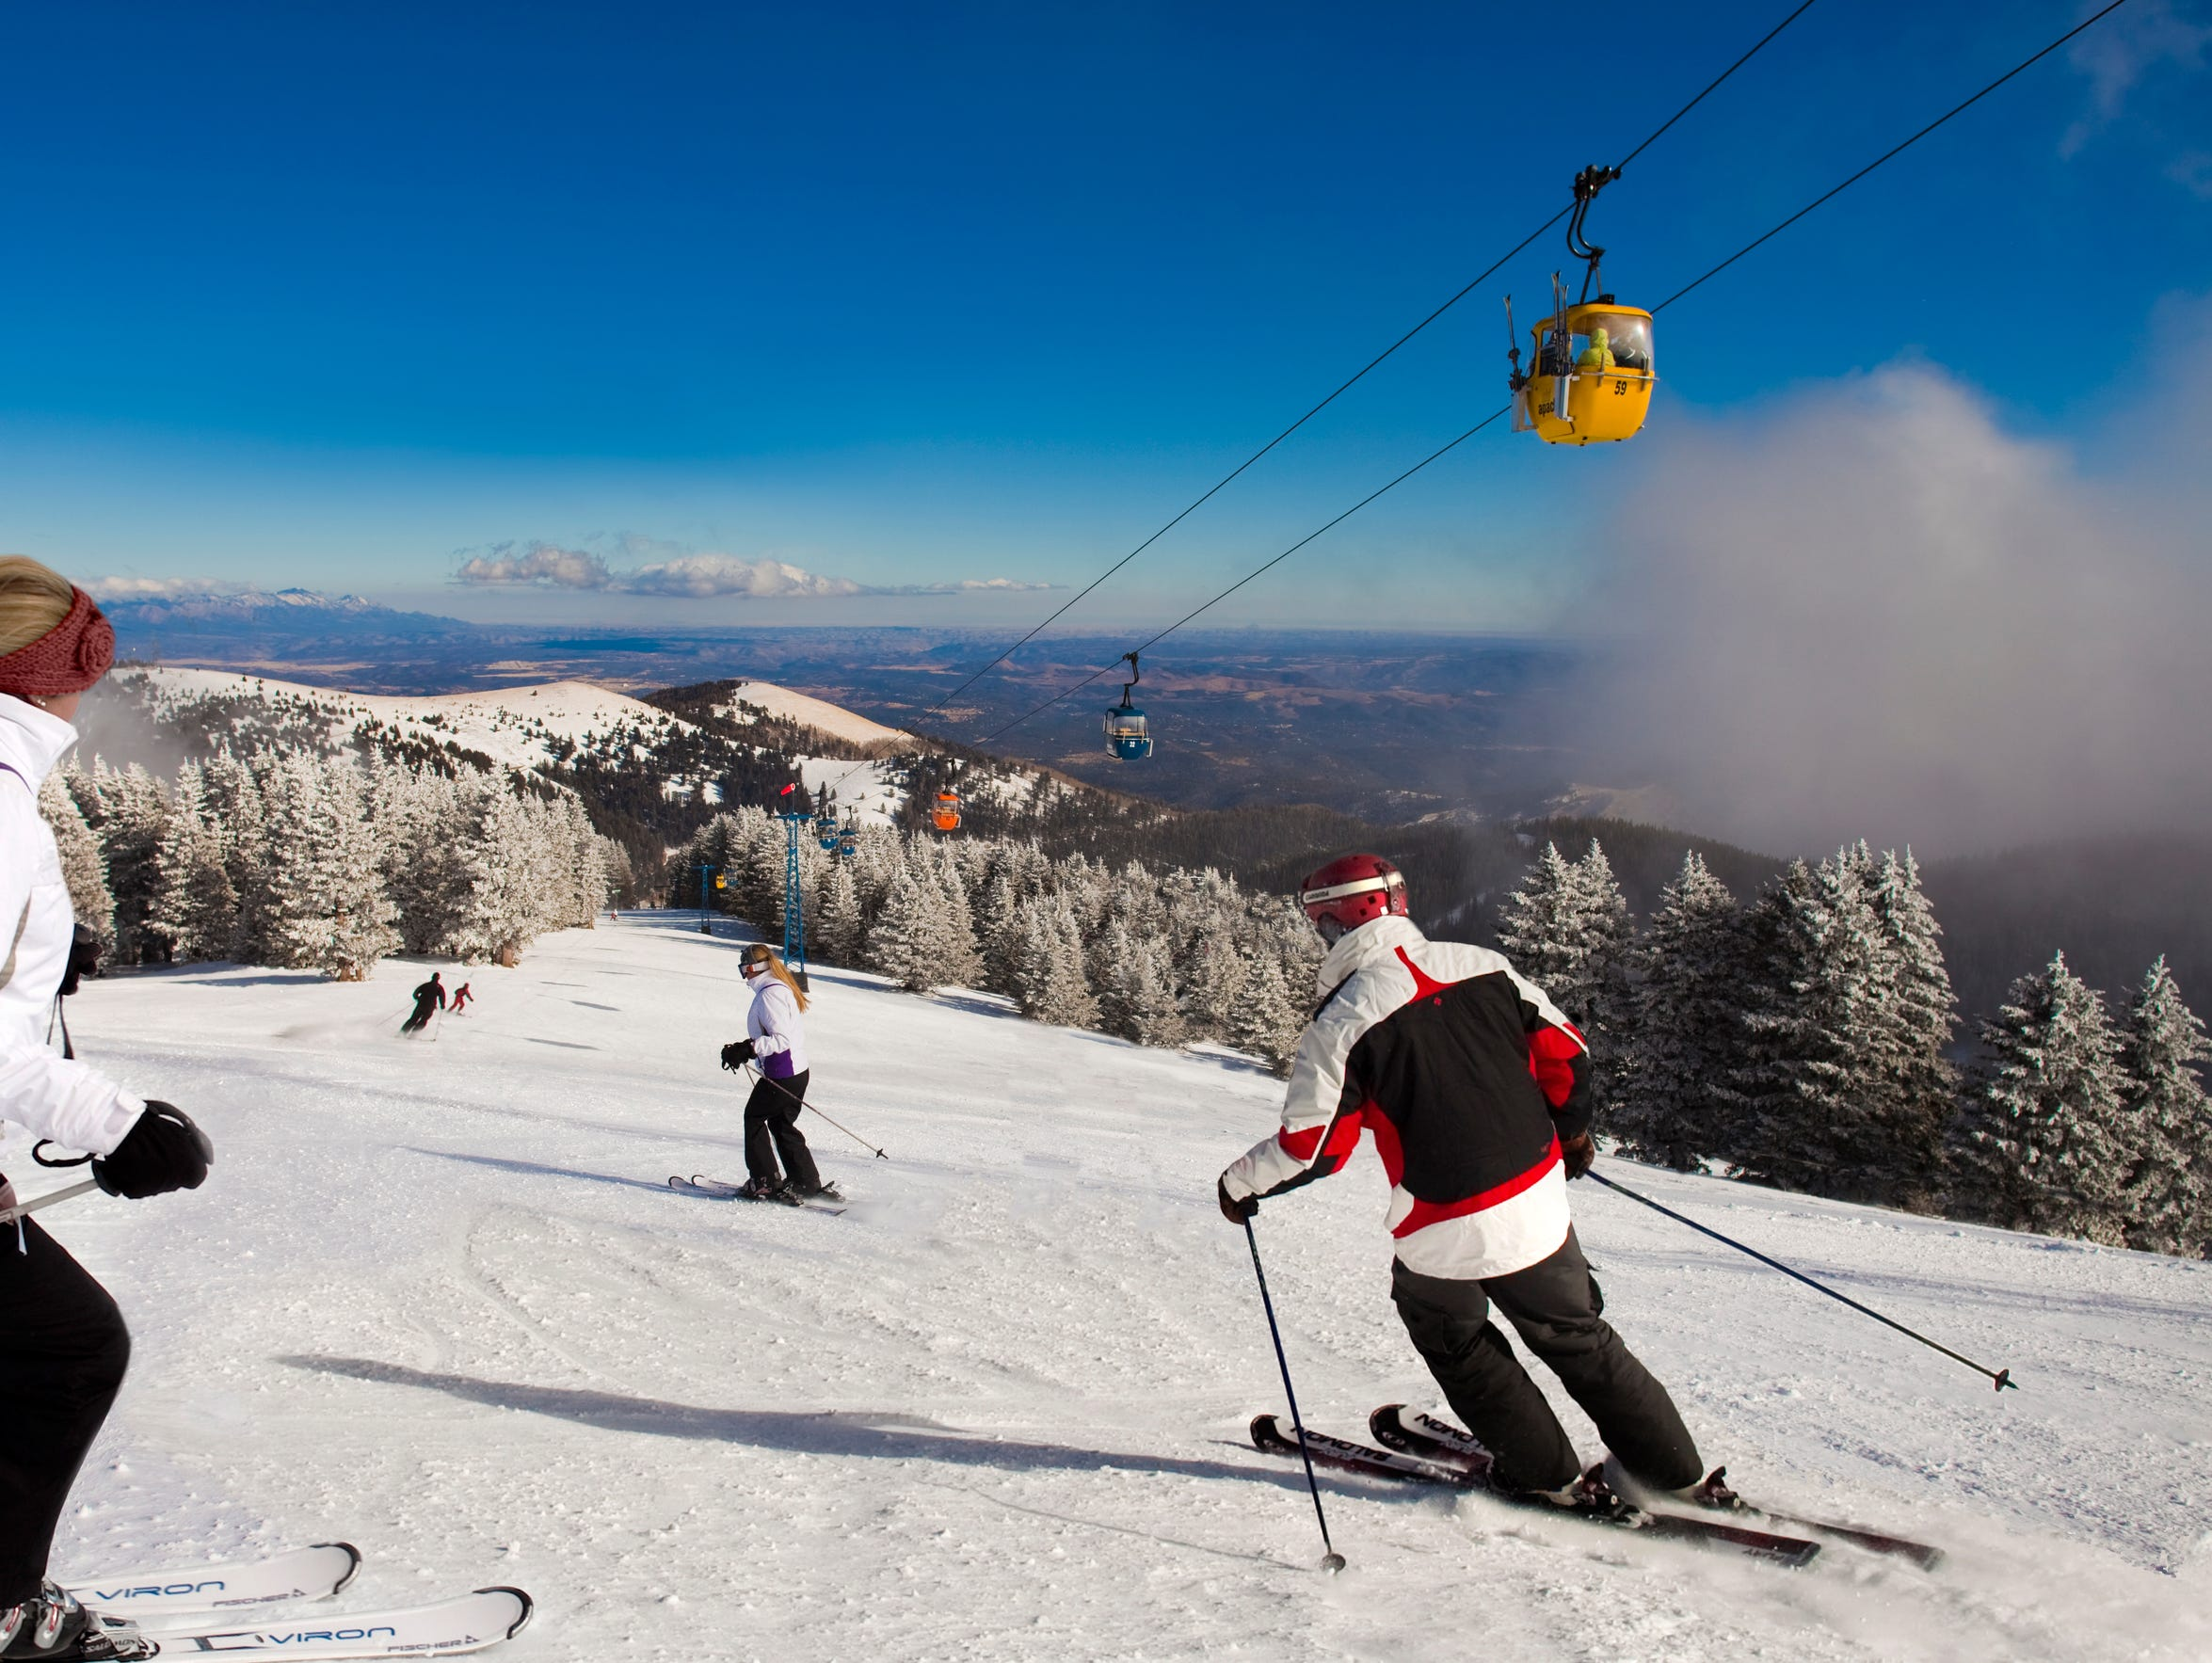 Ski Apache Mountain opens on Dec. 15 for winter sports.